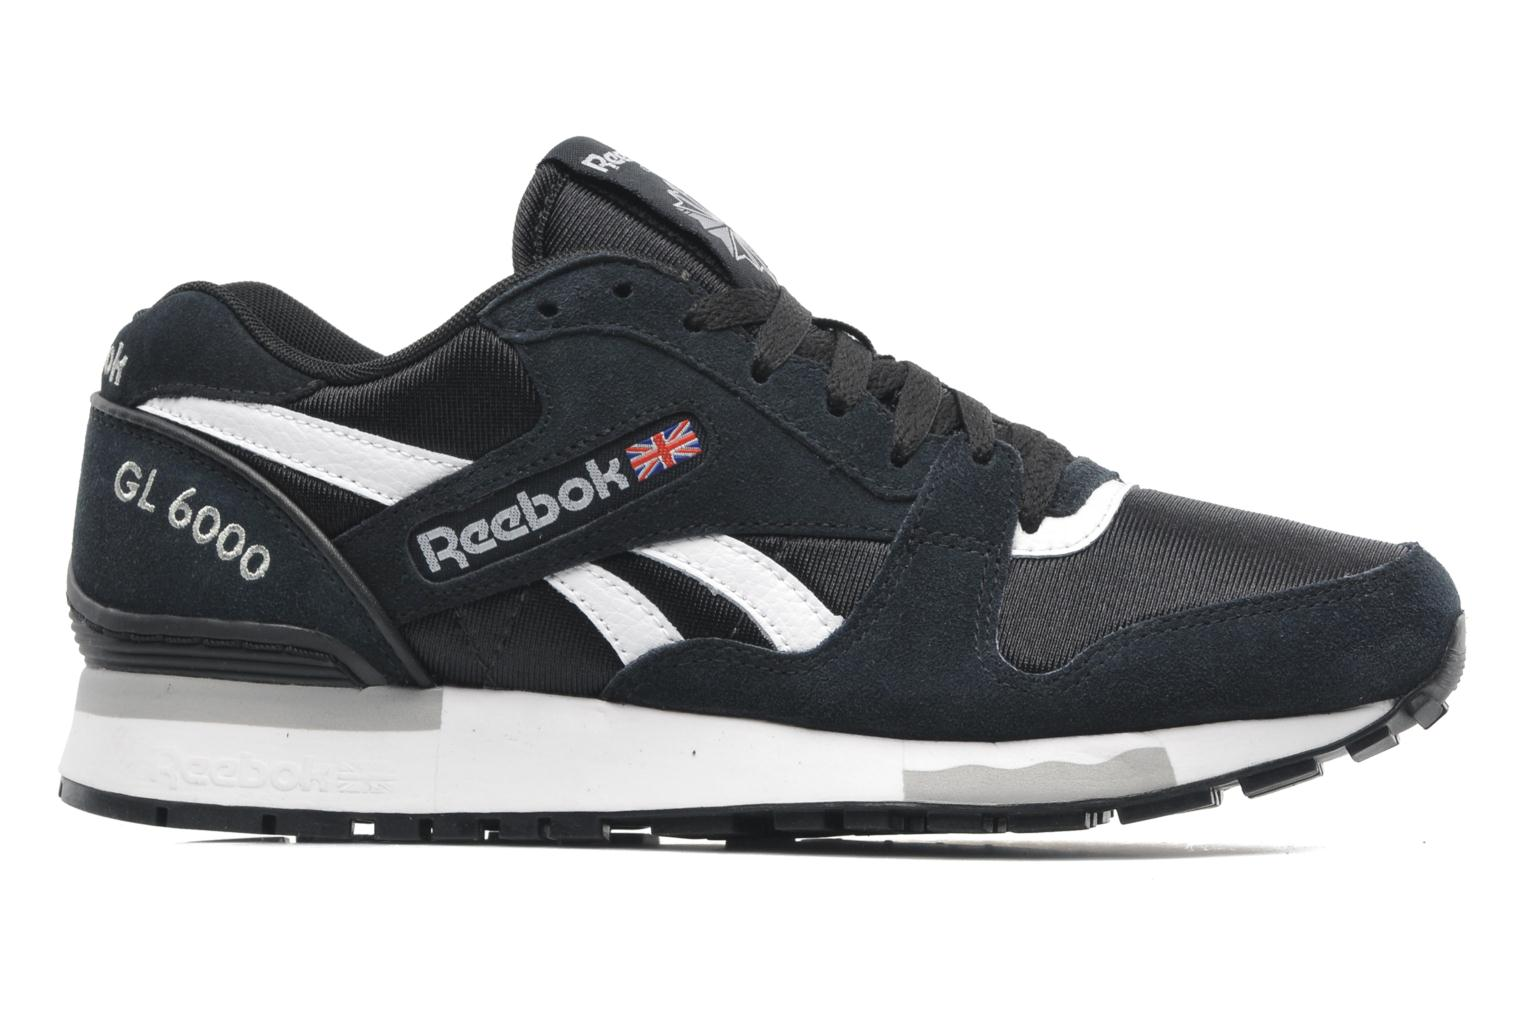 reebok gl 6000 trainers in black at 194247. Black Bedroom Furniture Sets. Home Design Ideas